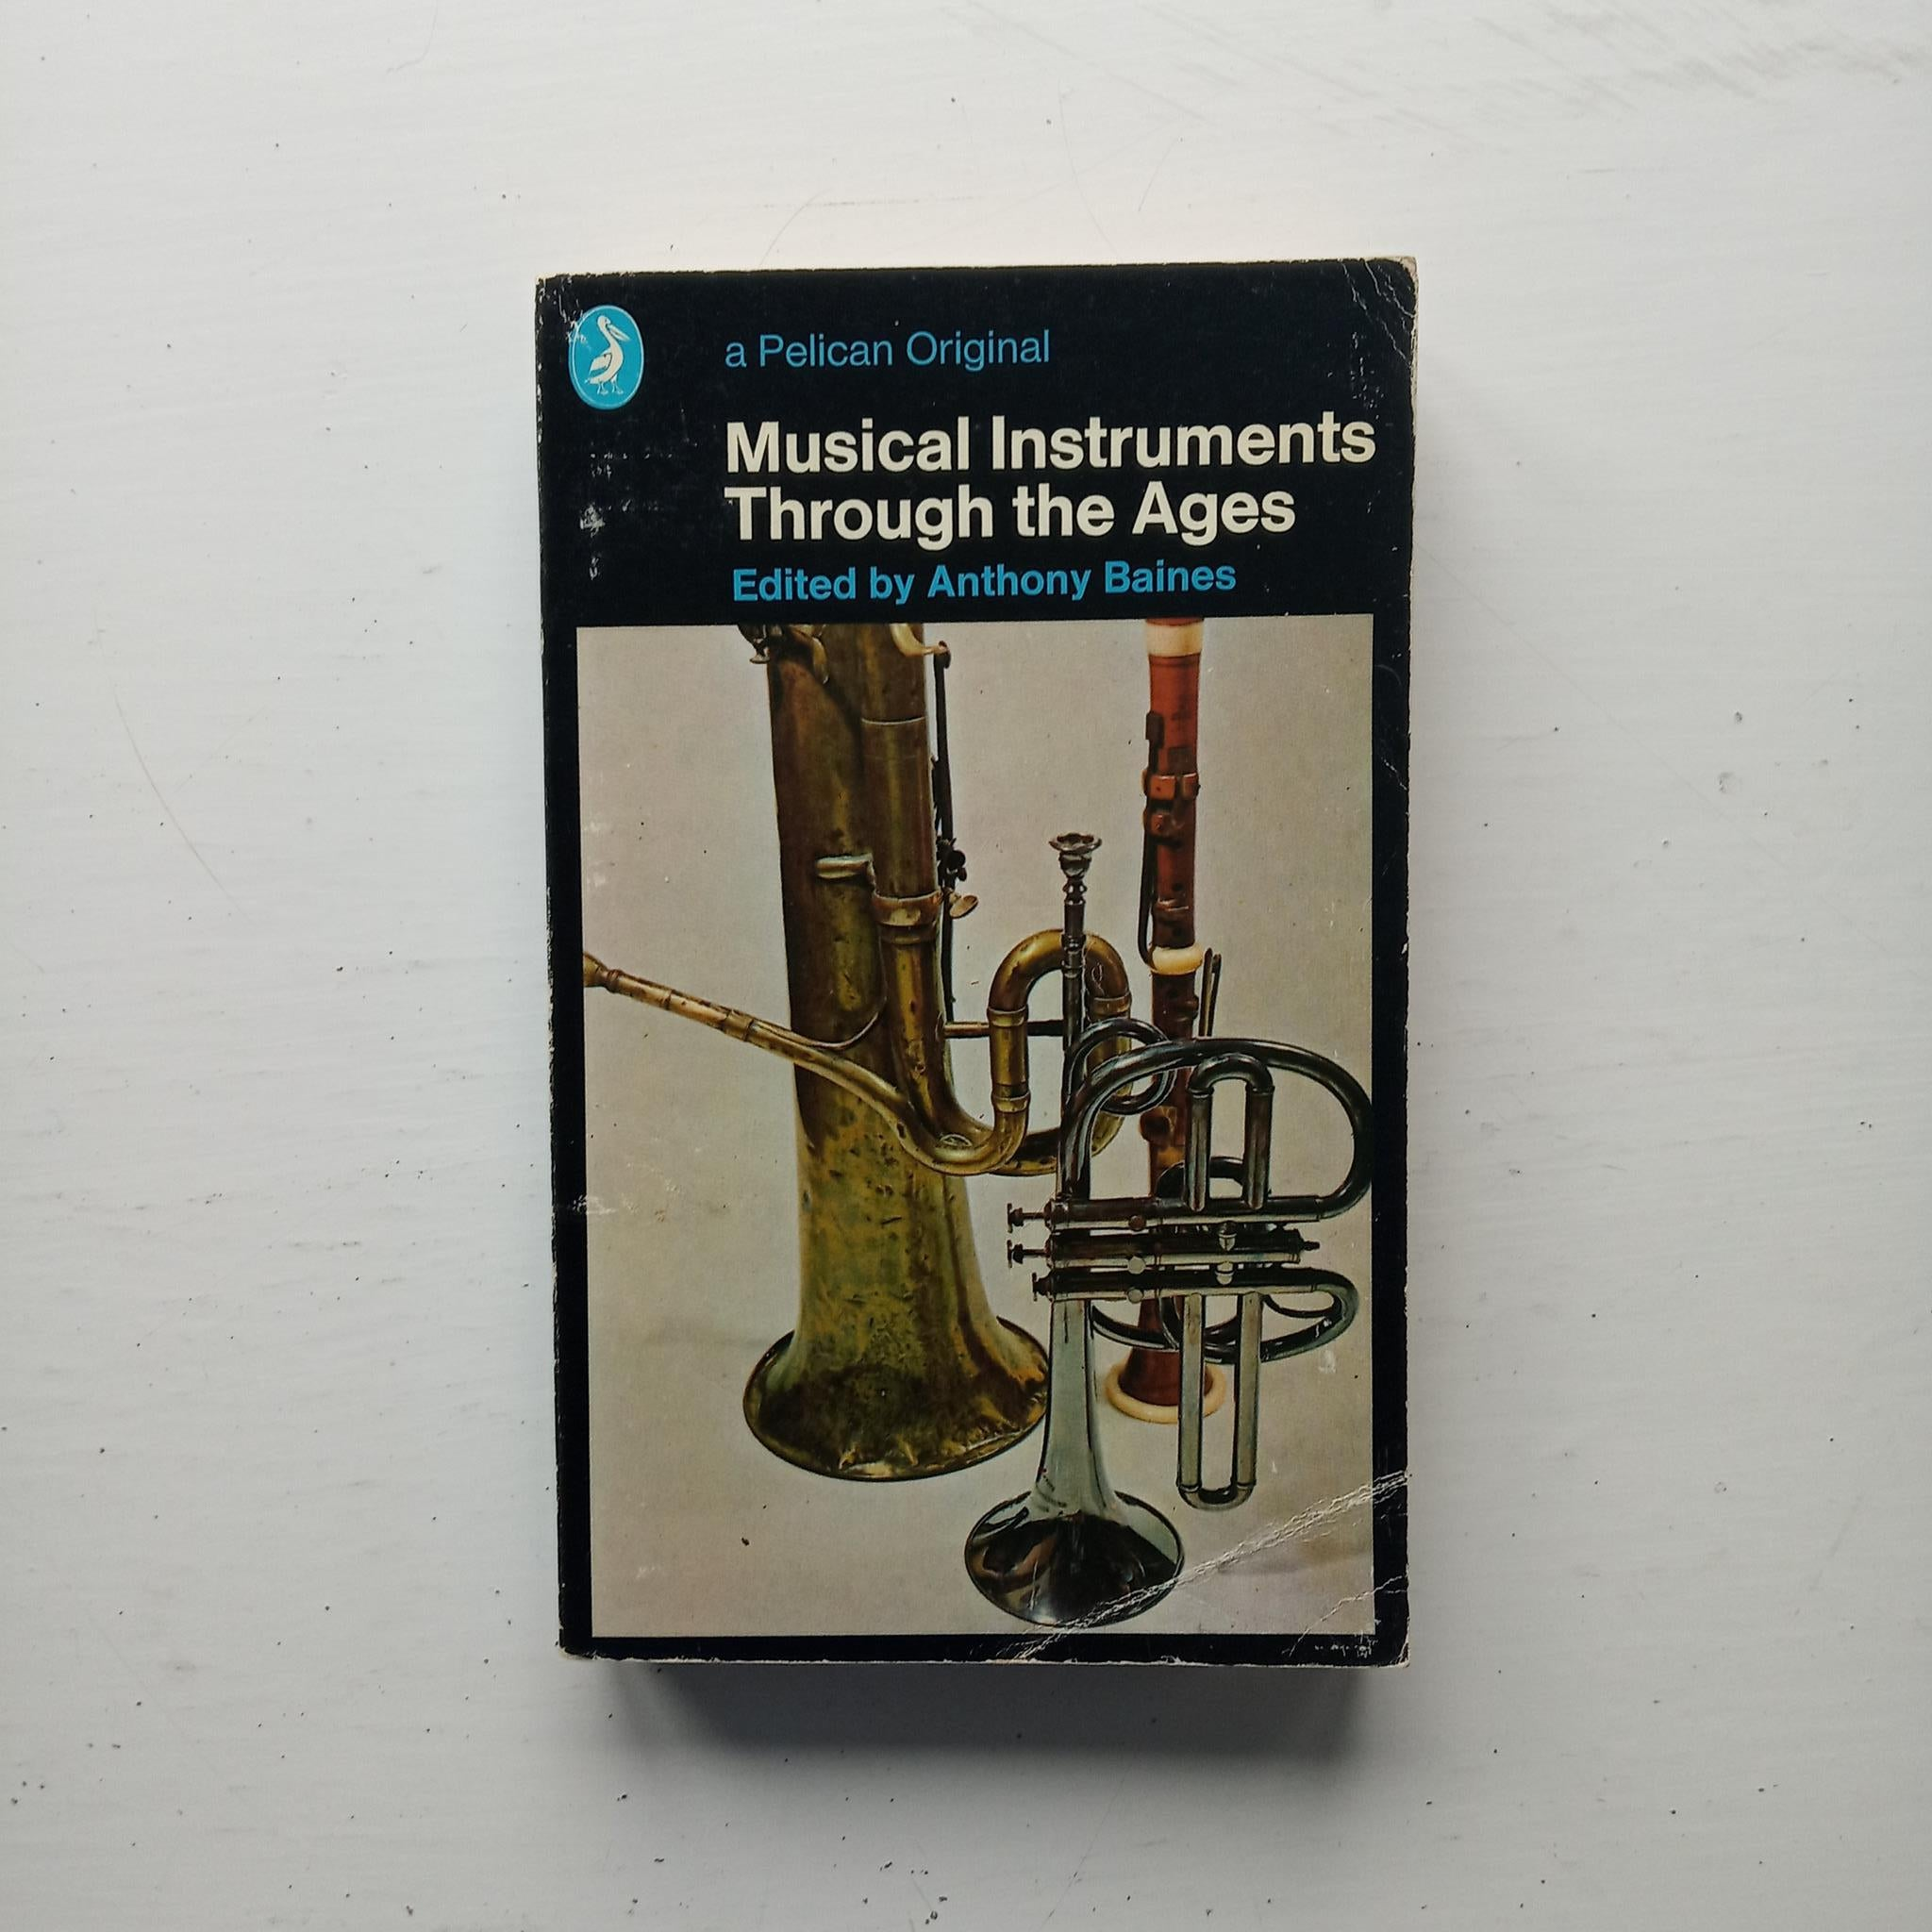 Musical Instruments Through the Ages by Anthony Baines (ed)